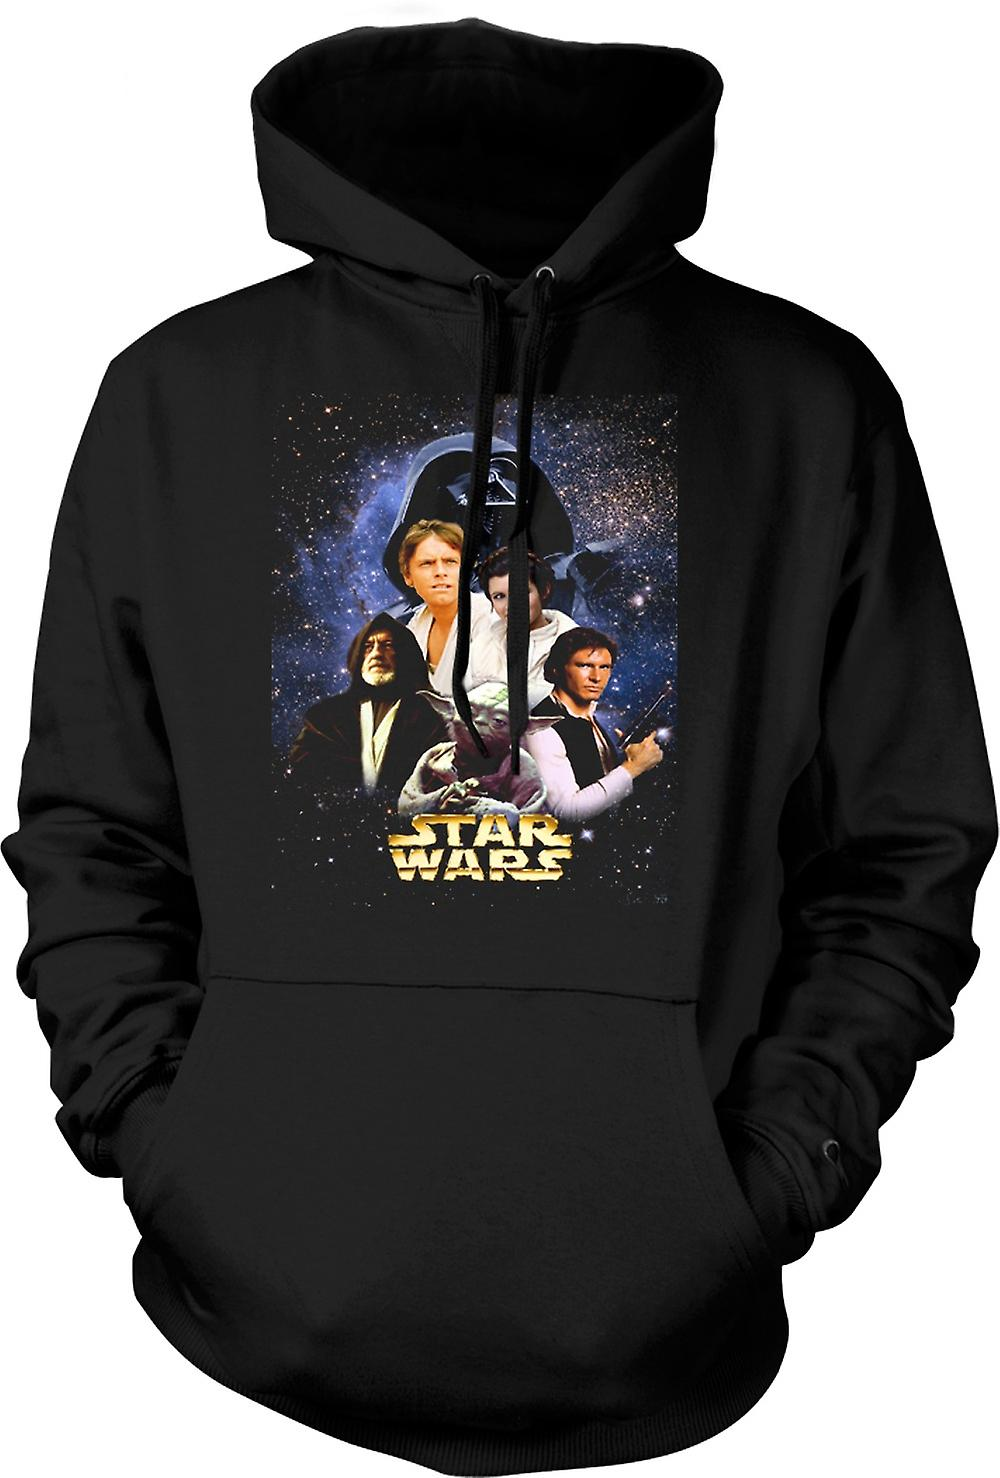 Mens Hoodie - Star Wars - Movie - Poster